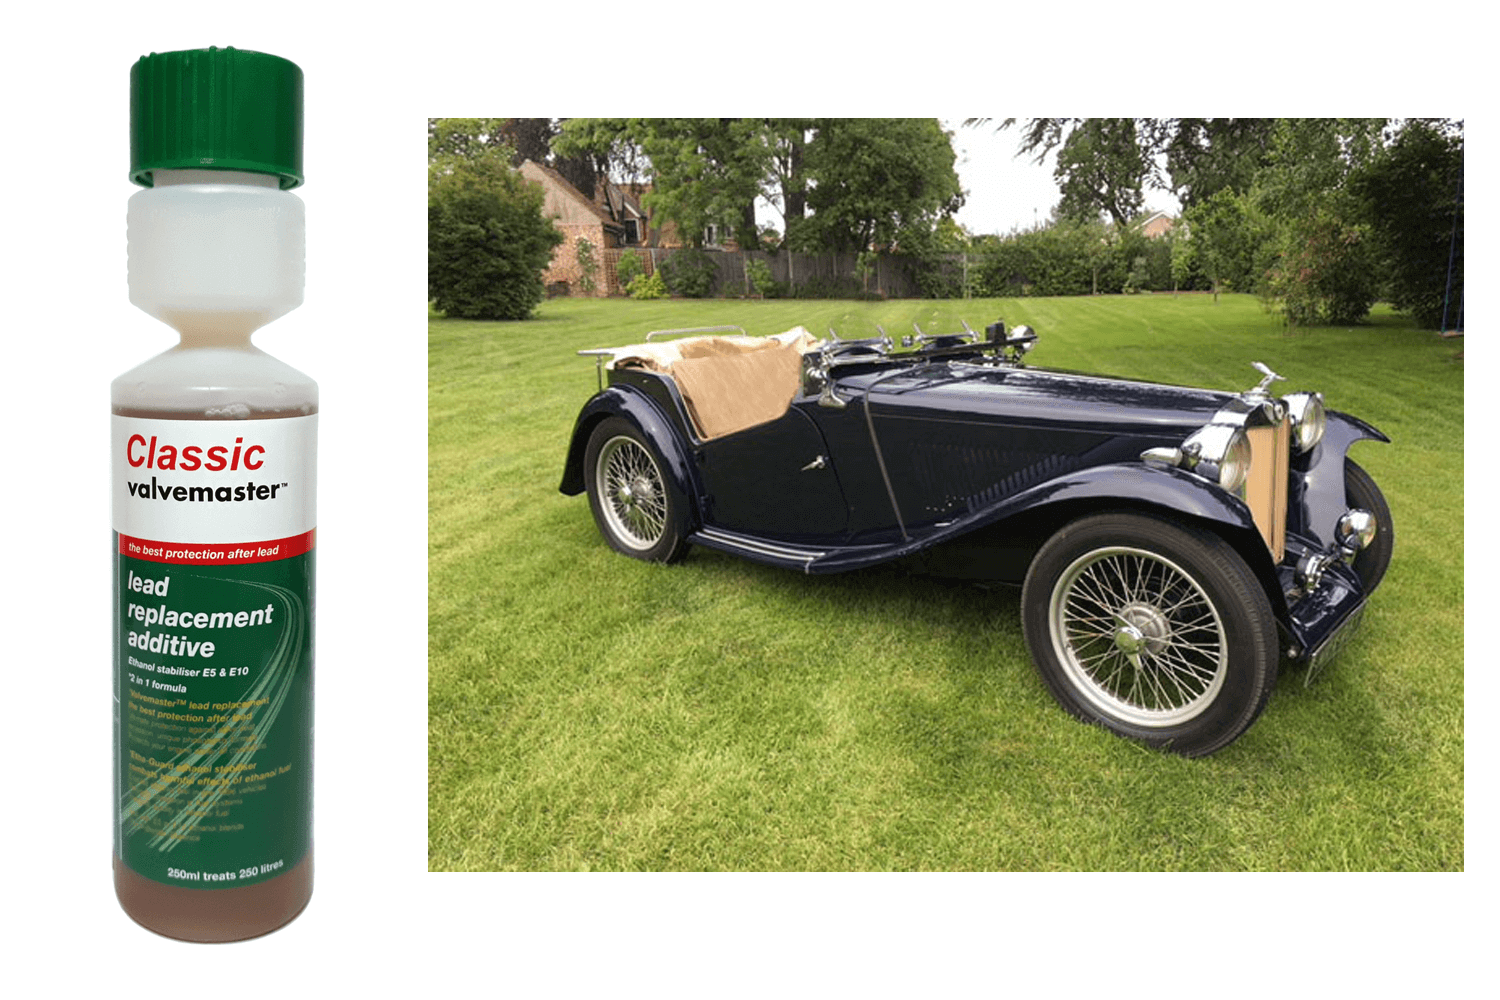 A classic MG with bottle of Valvemaster